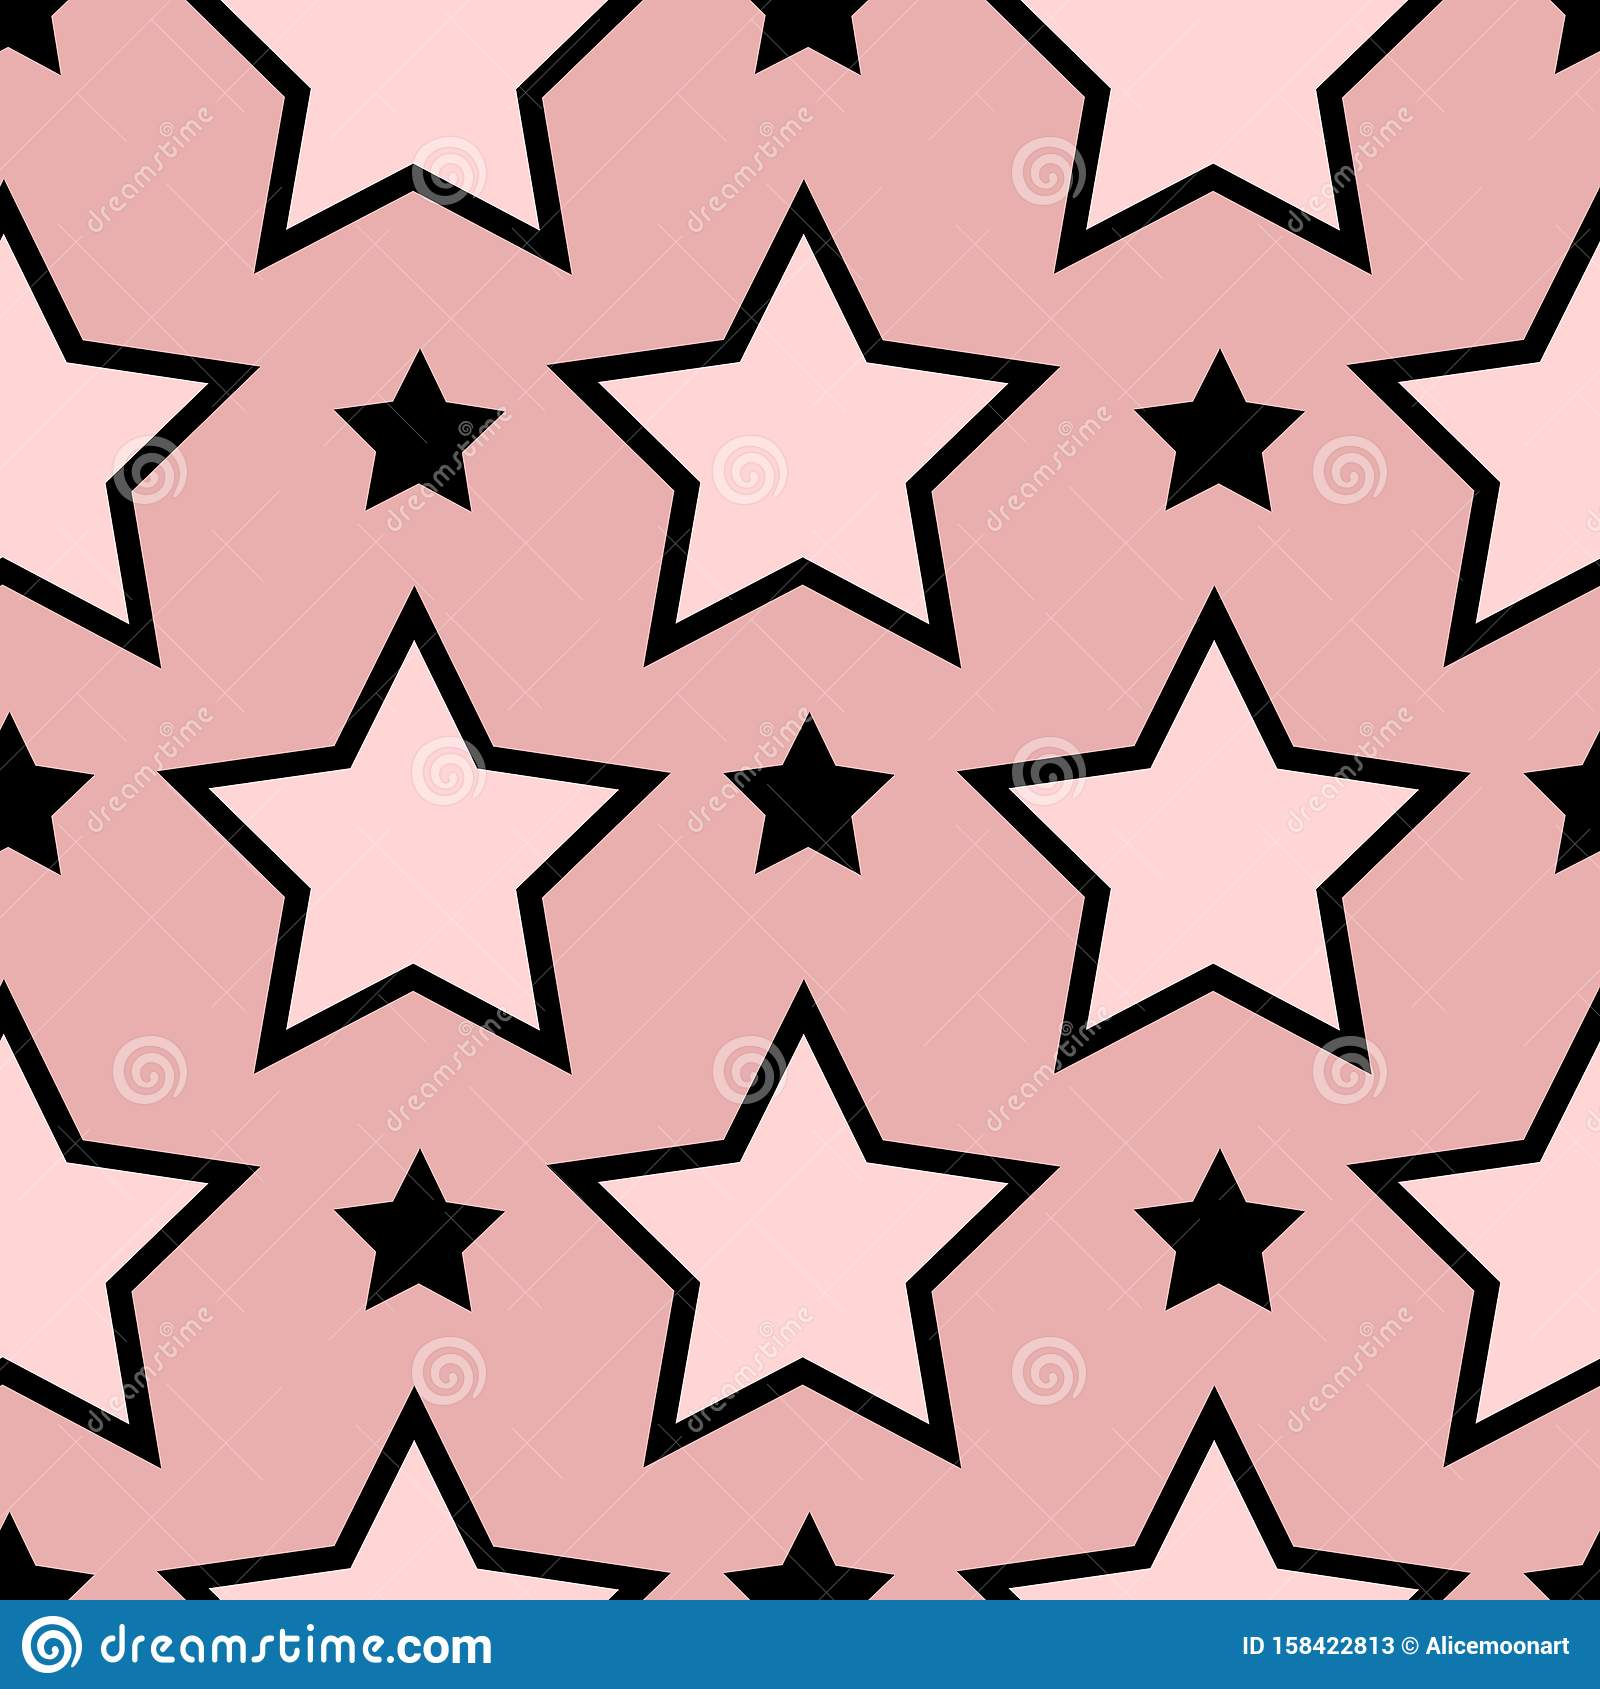 Seamless Pattern Texture With Line Drawing Stars.